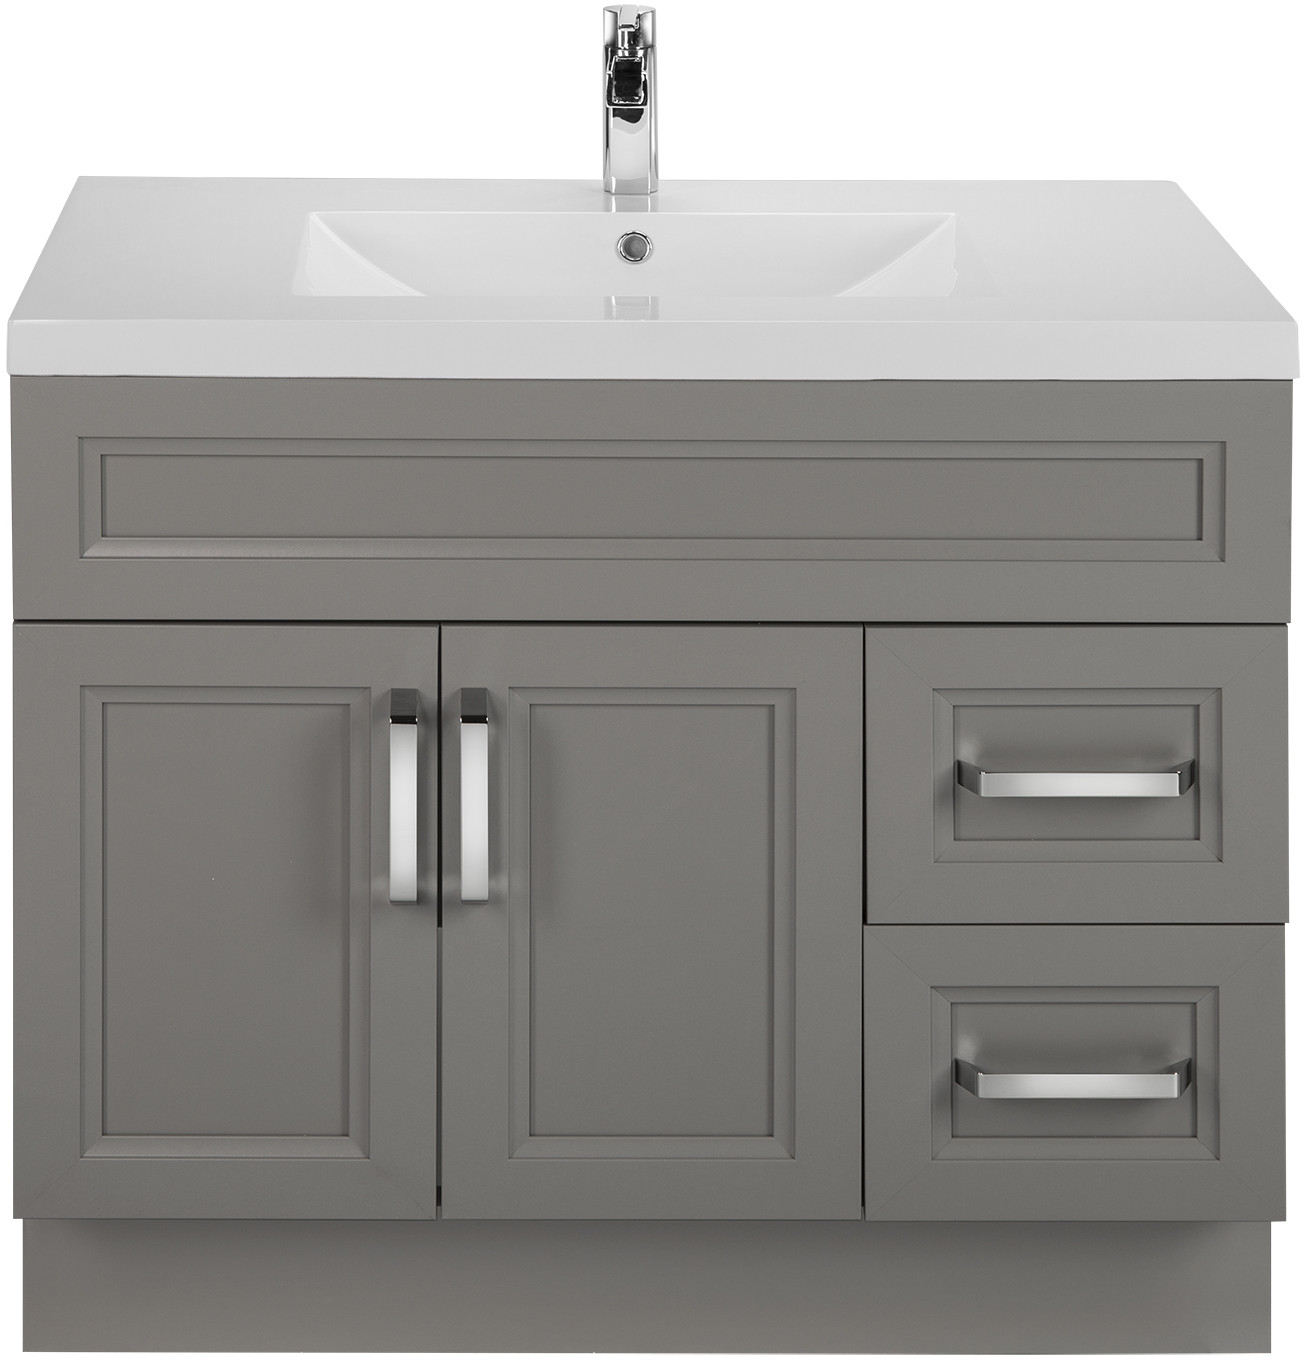 Cutler Kitchen & Bath URBDB36RHT 36 Inch Single Bowl Vanity with ...